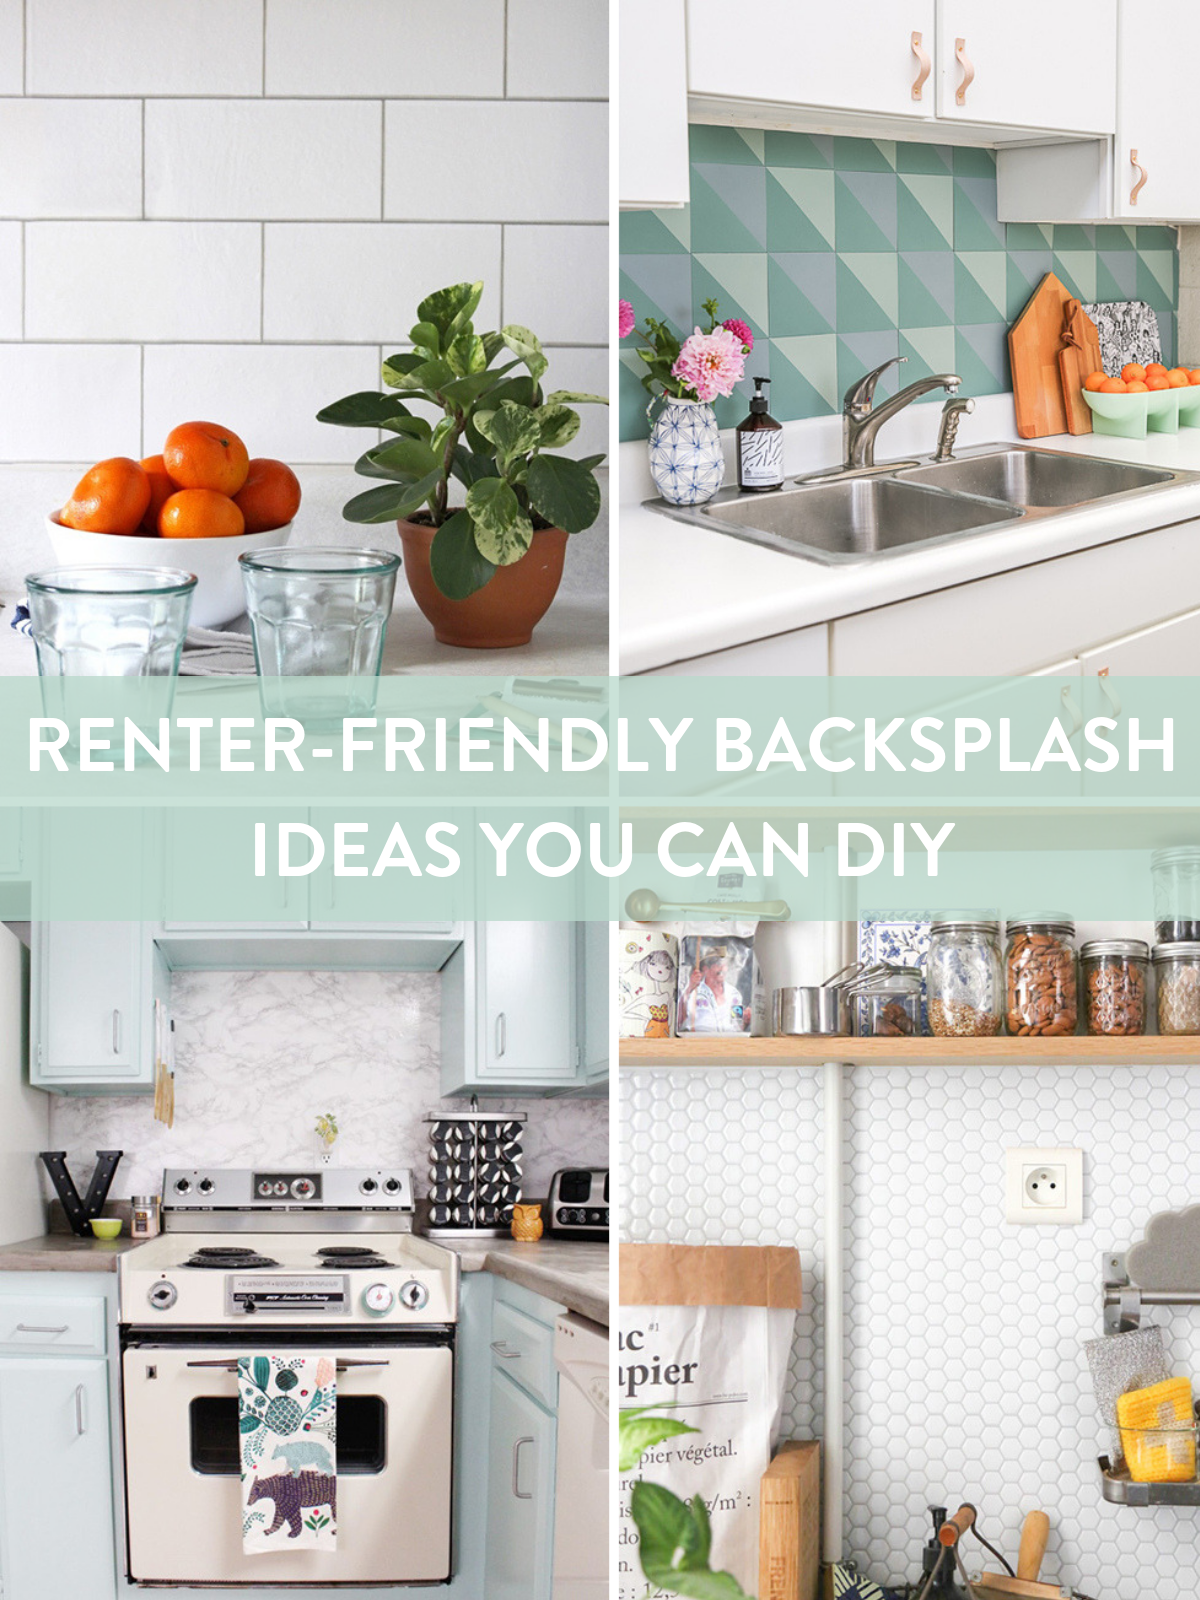 - Removable Backsplash Ideas For Renters. There Are Lots Of Ways To